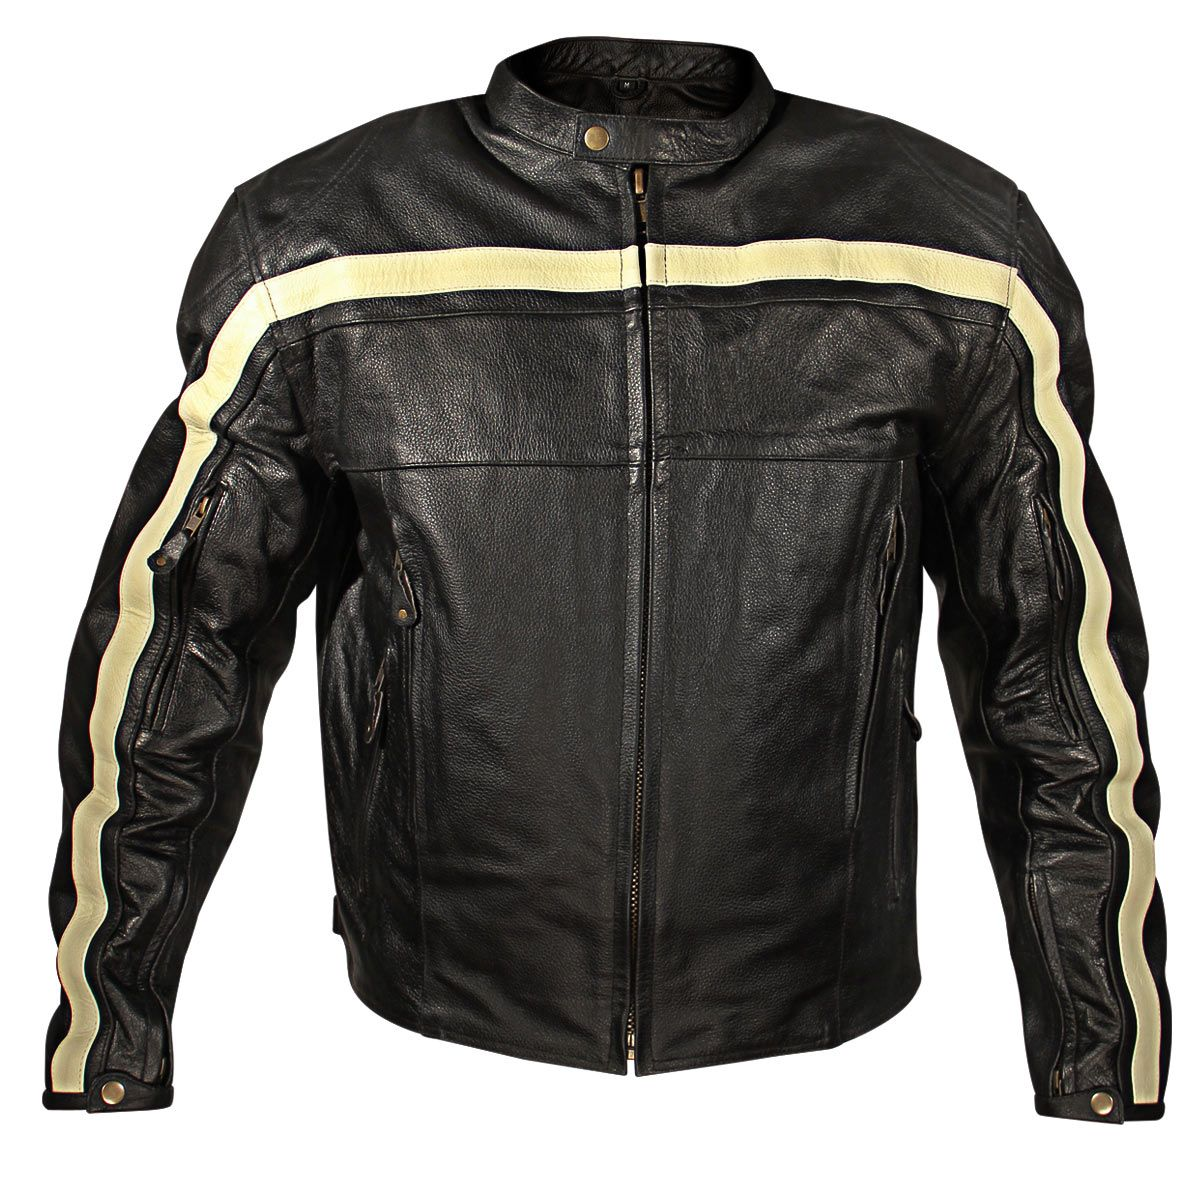 New VintageStyle Racing Jackets for Him and for Her